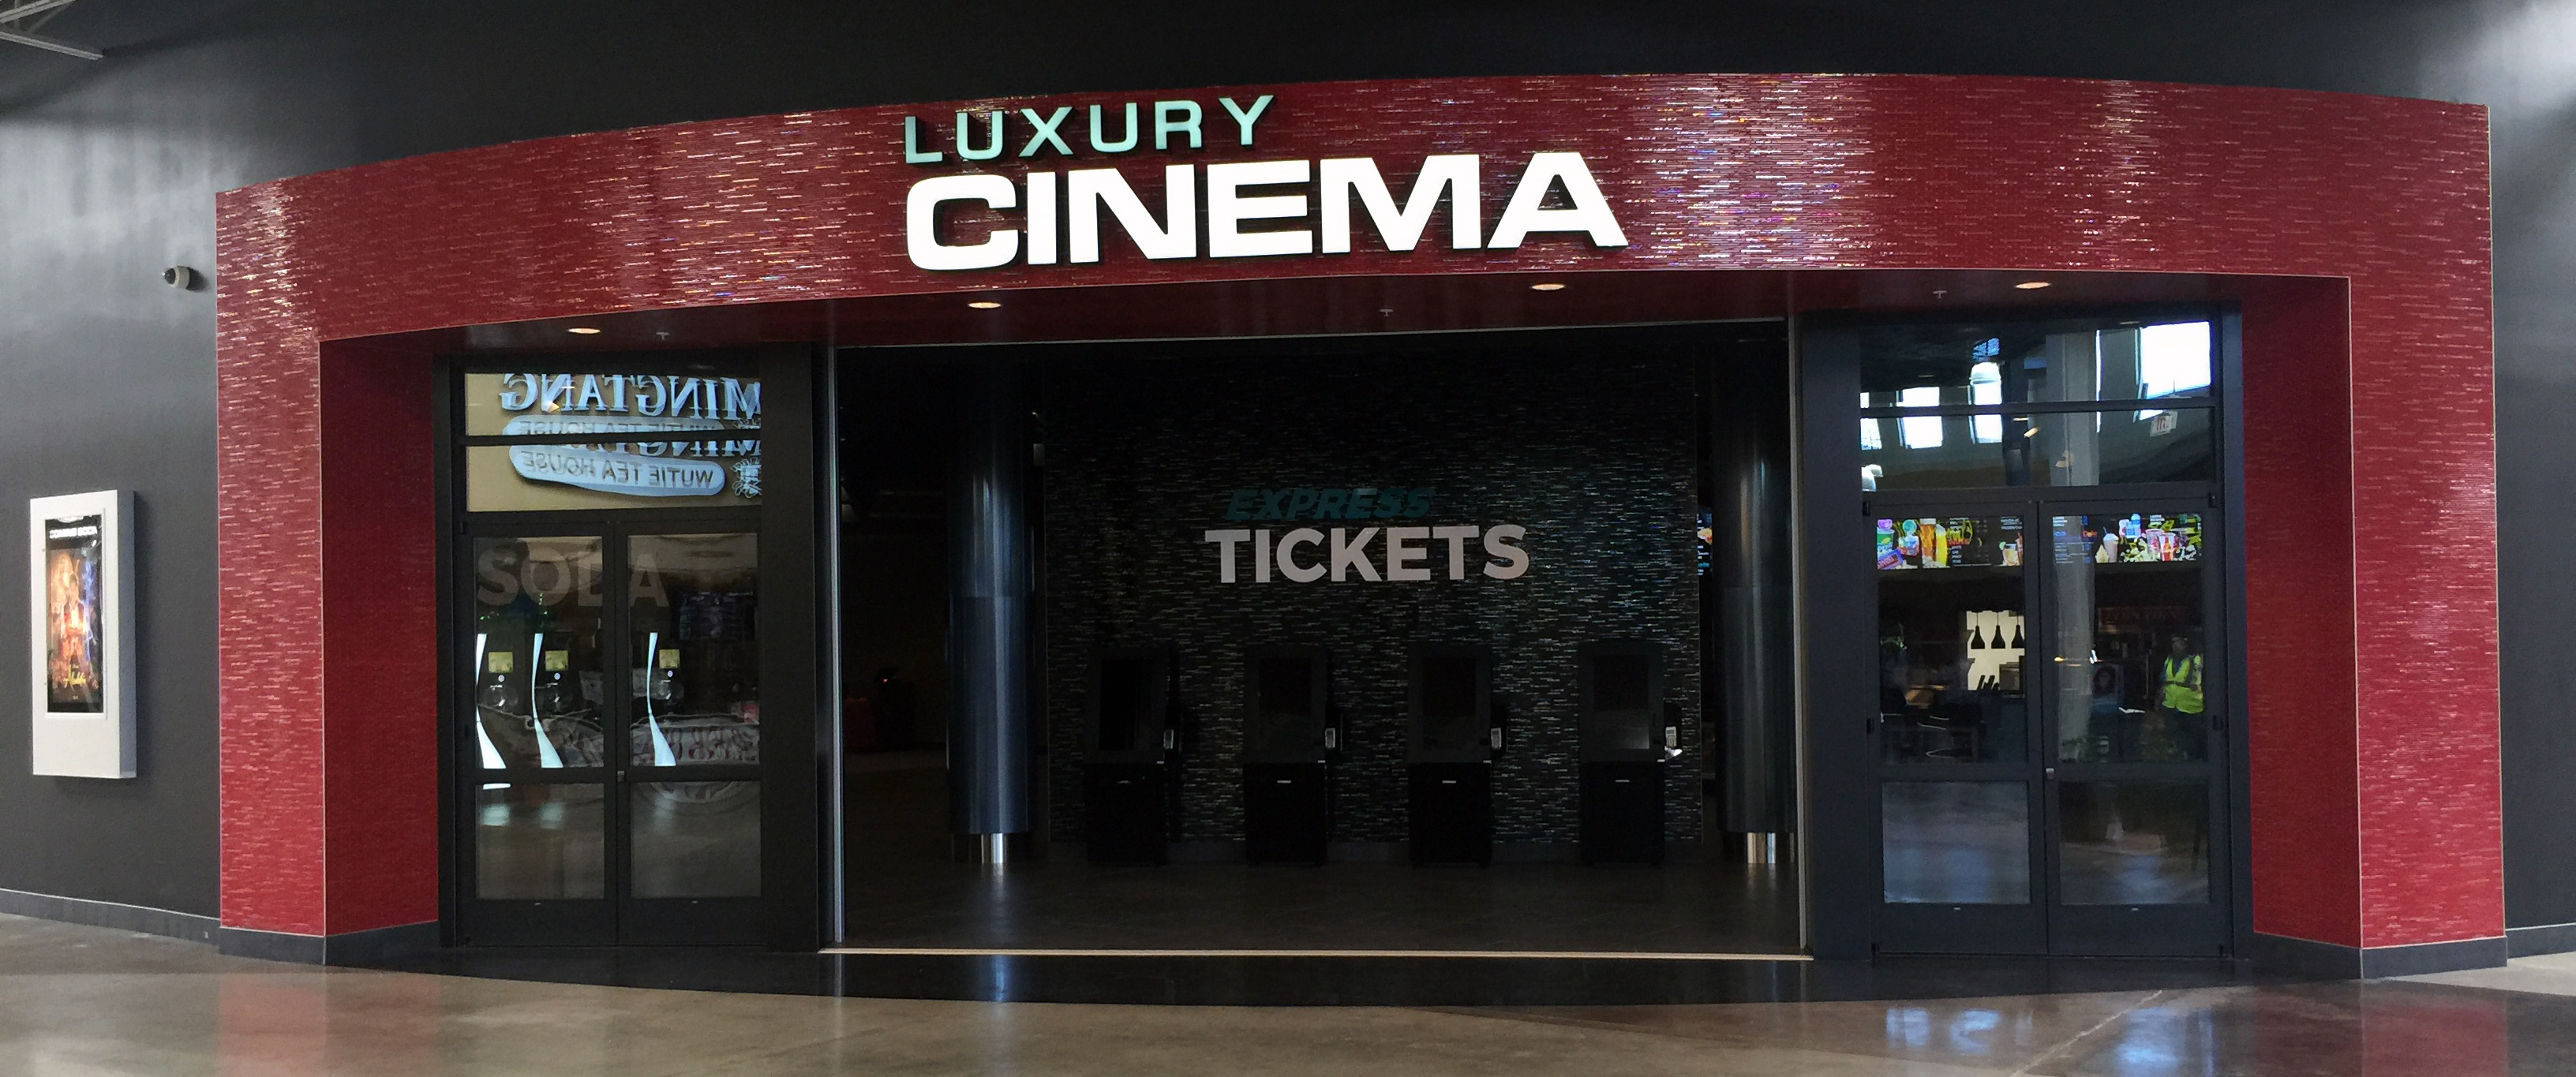 Country Club Cinema Photo 2